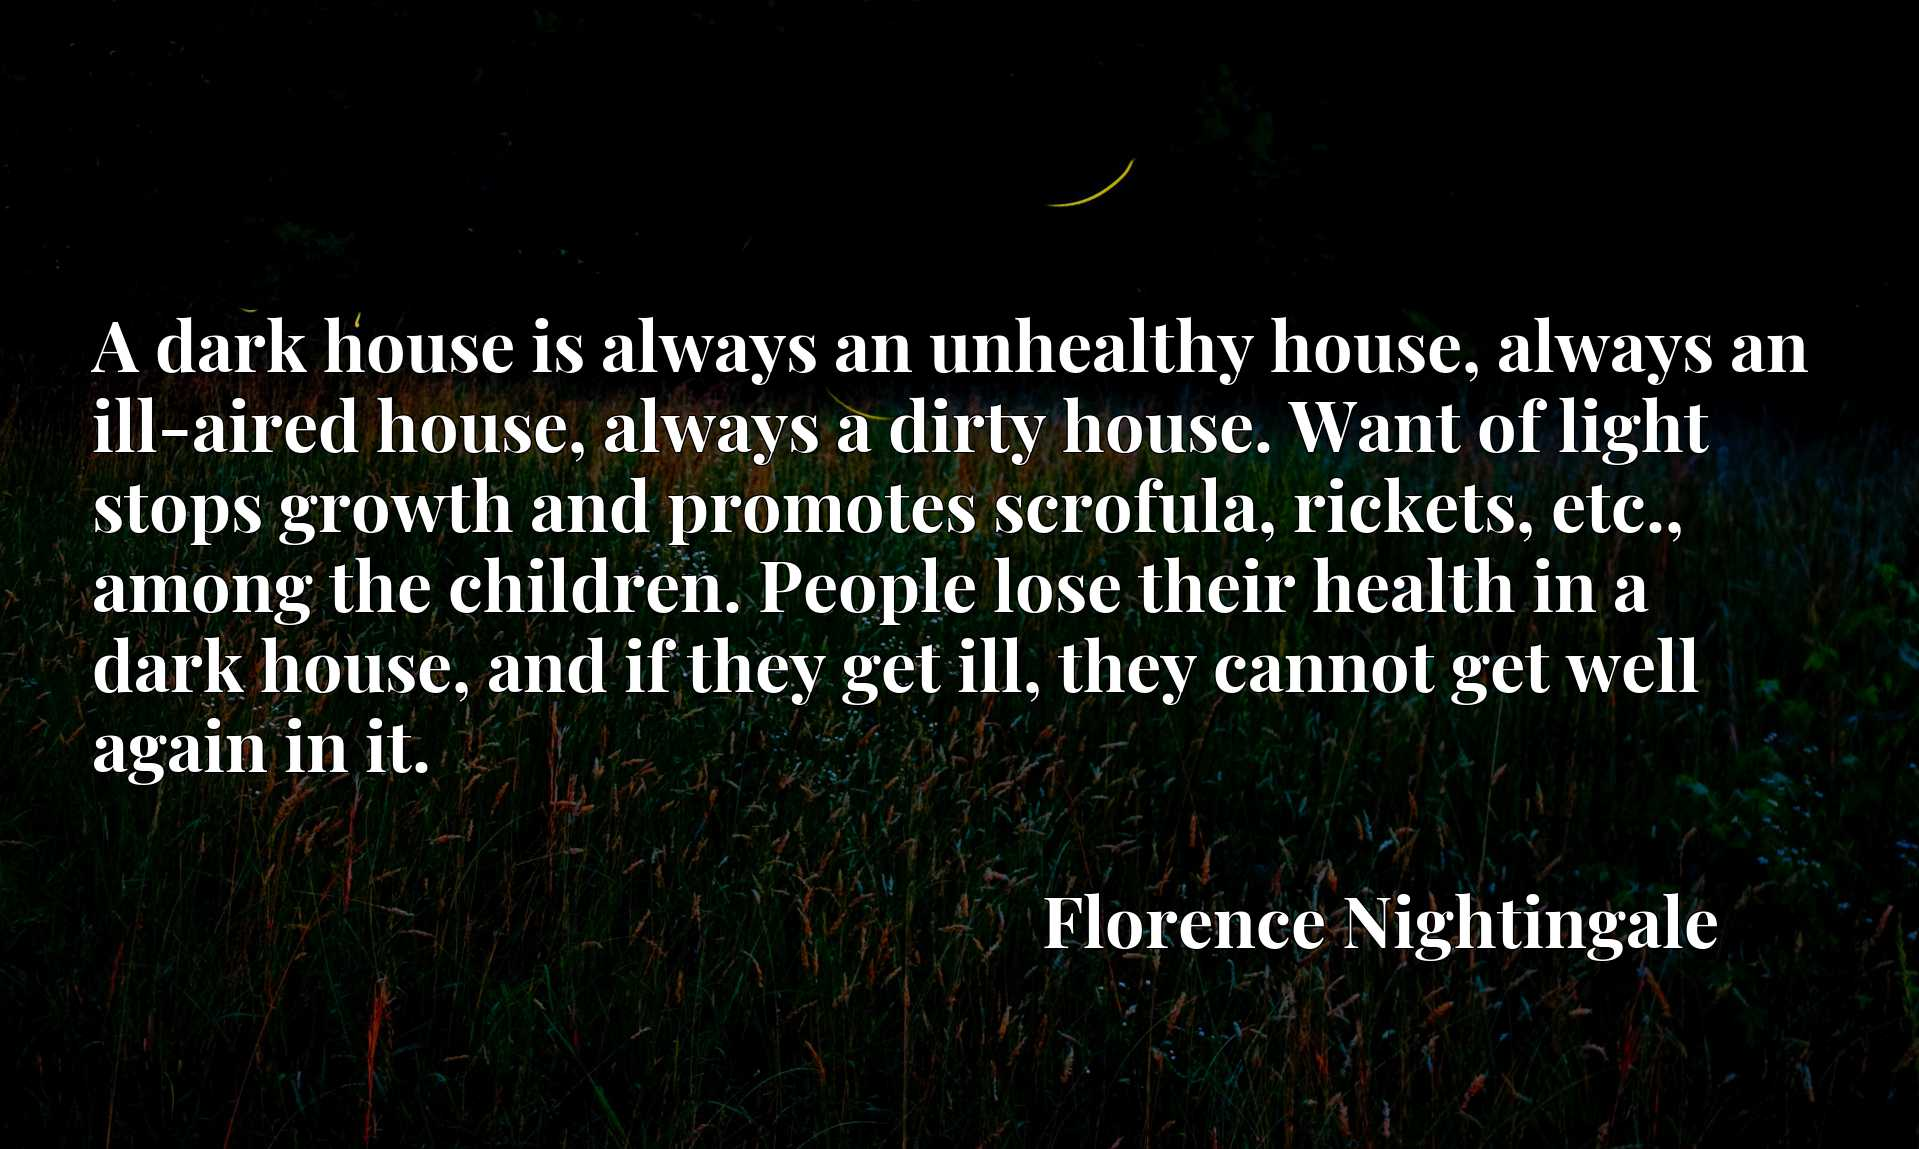 A dark house is always an unhealthy house, always an ill-aired house, always a dirty house. Want of light stops growth and promotes scrofula, rickets, etc., among the children. People lose their health in a dark house, and if they get ill, they cannot get well again in it.